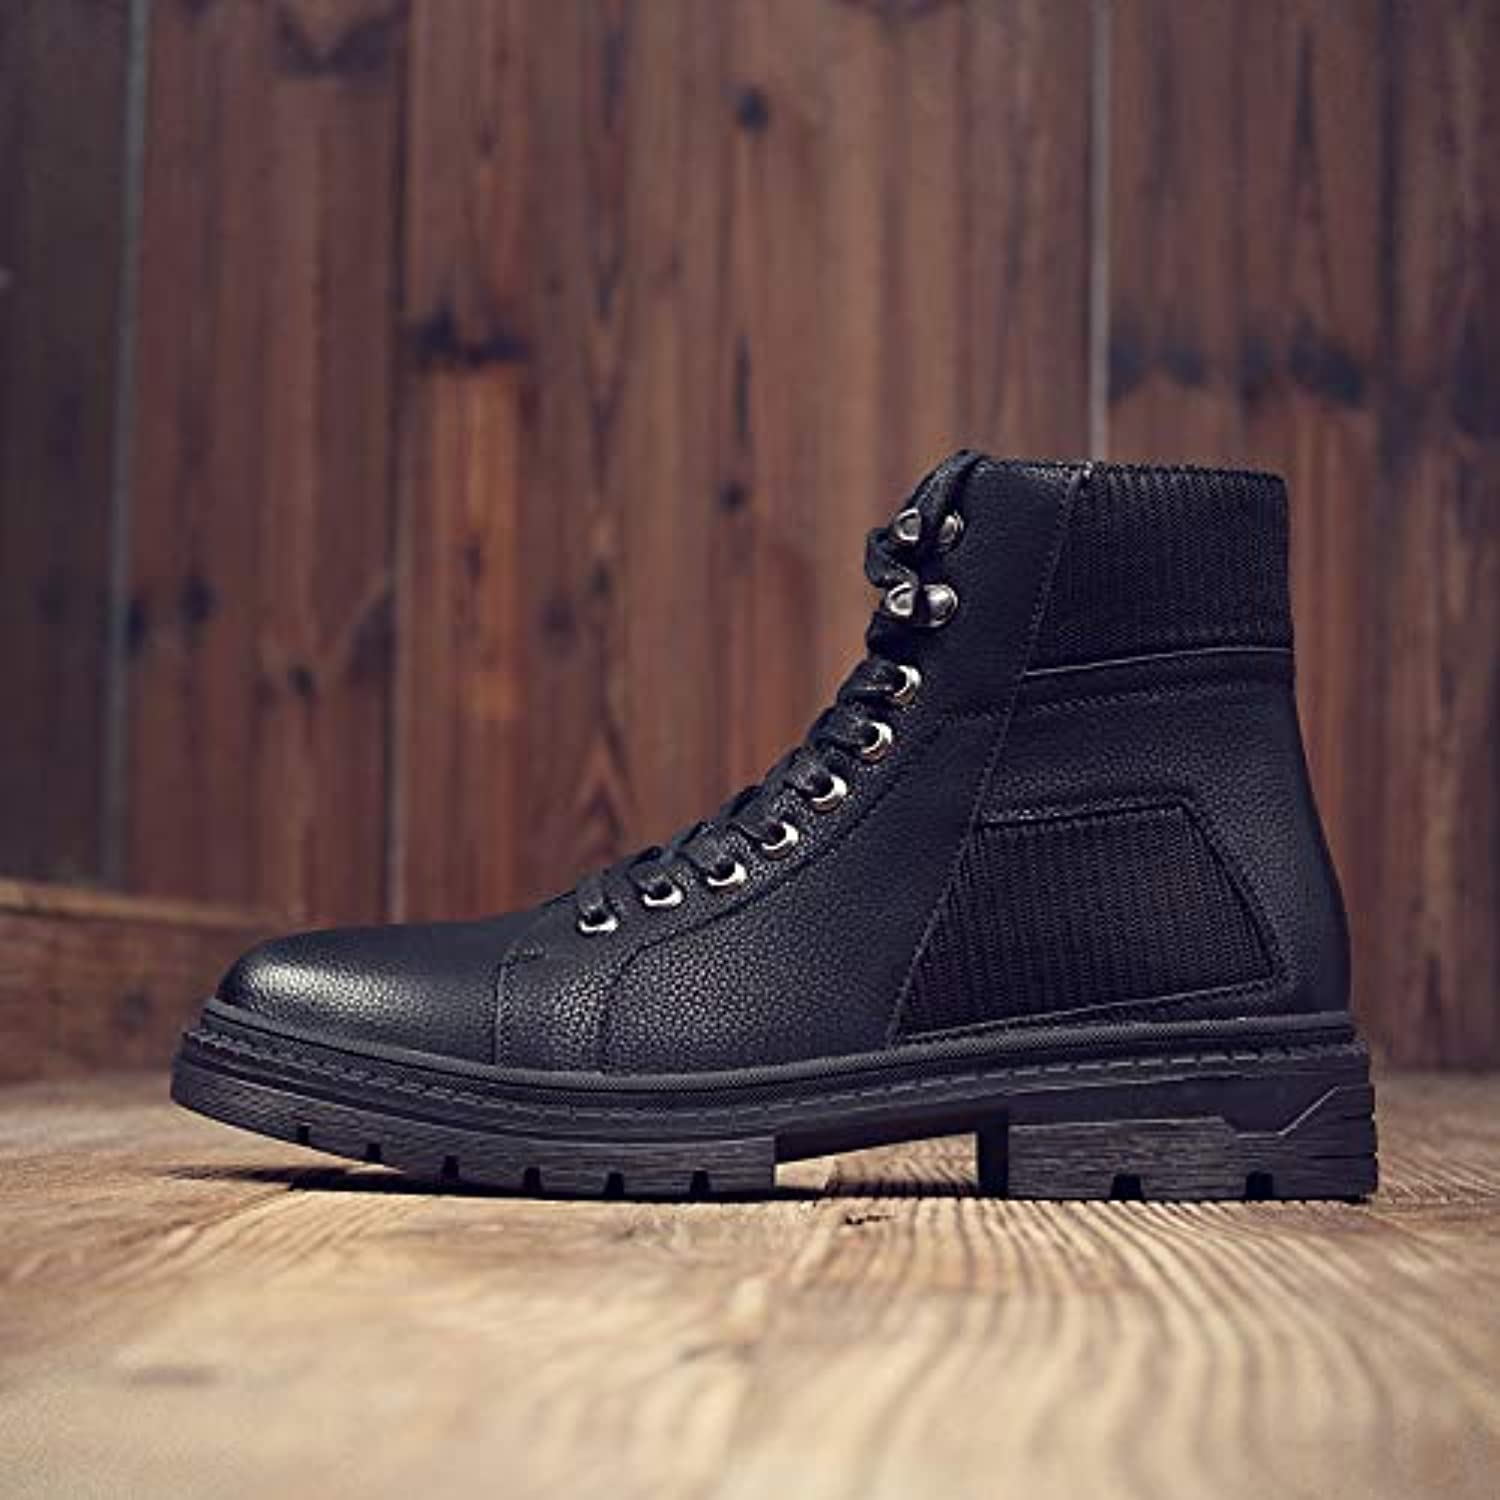 ZyuQ Ankle boots Martin Boots Men'S Autumn And Winter Boots, Men'S Boots, Boots, Black Boots